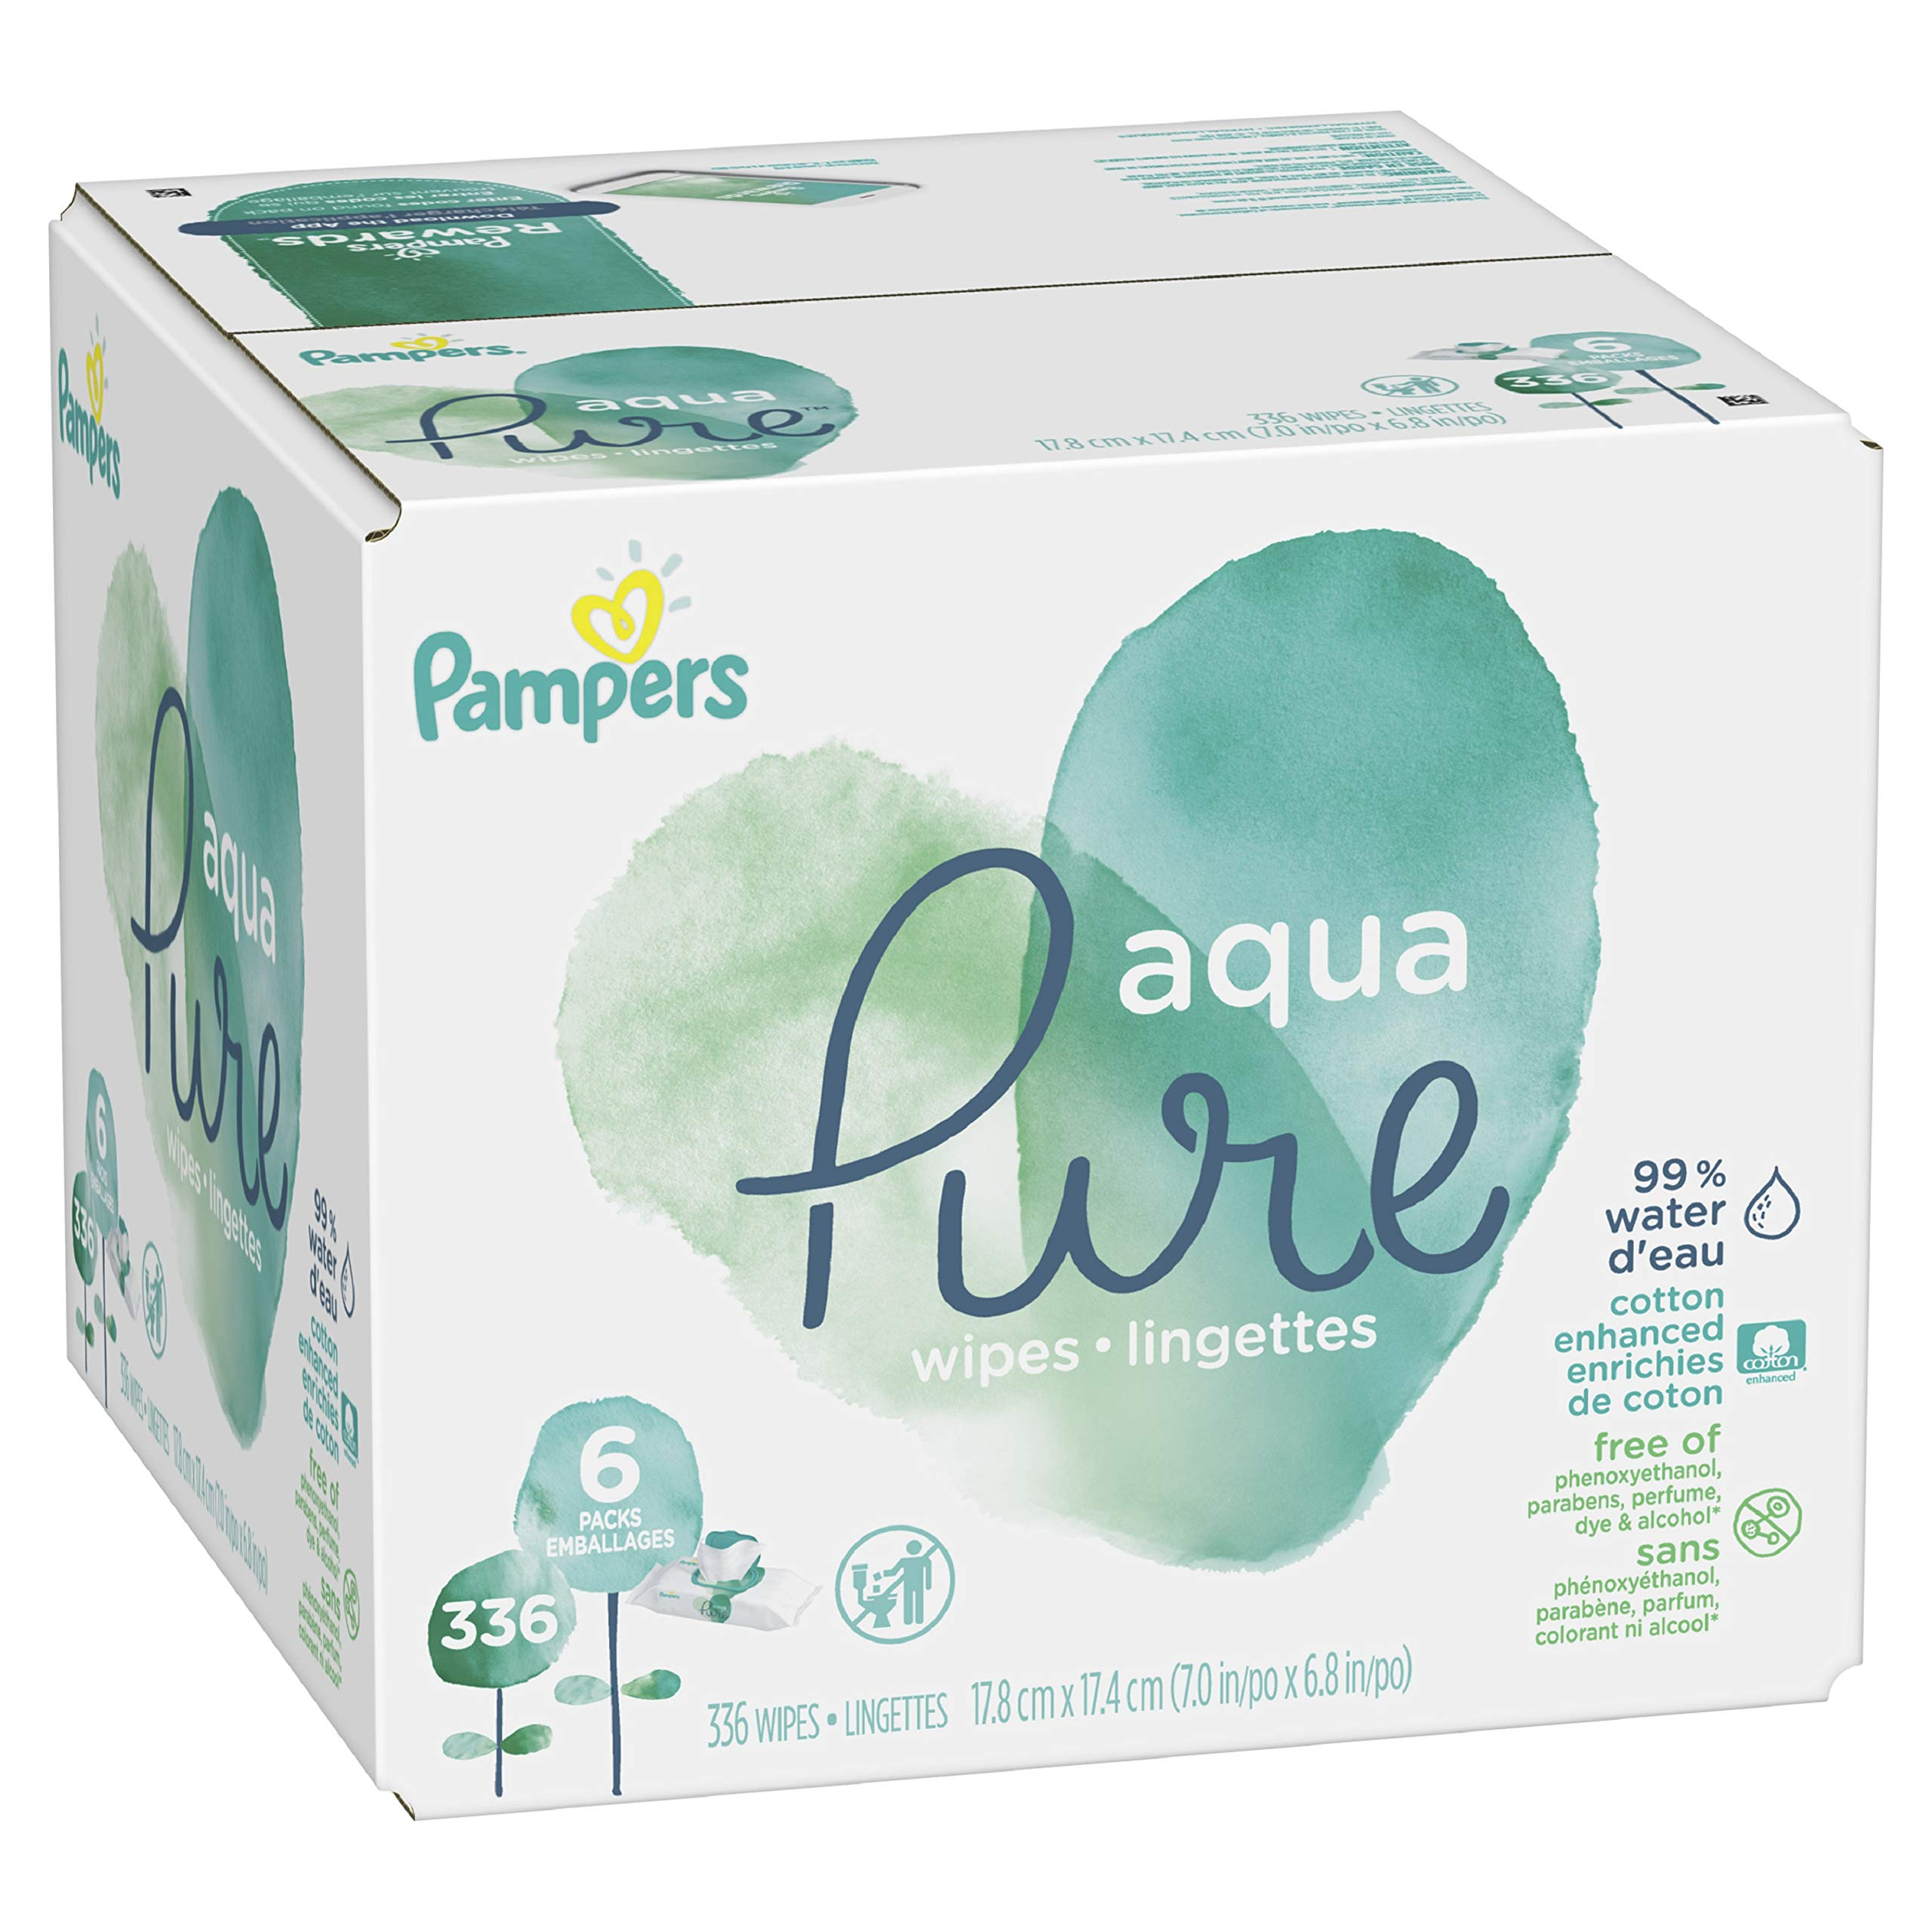 Pampers Aqua Pure 6X Pop-Top Sensitive Water Baby Wipes - 336 Count